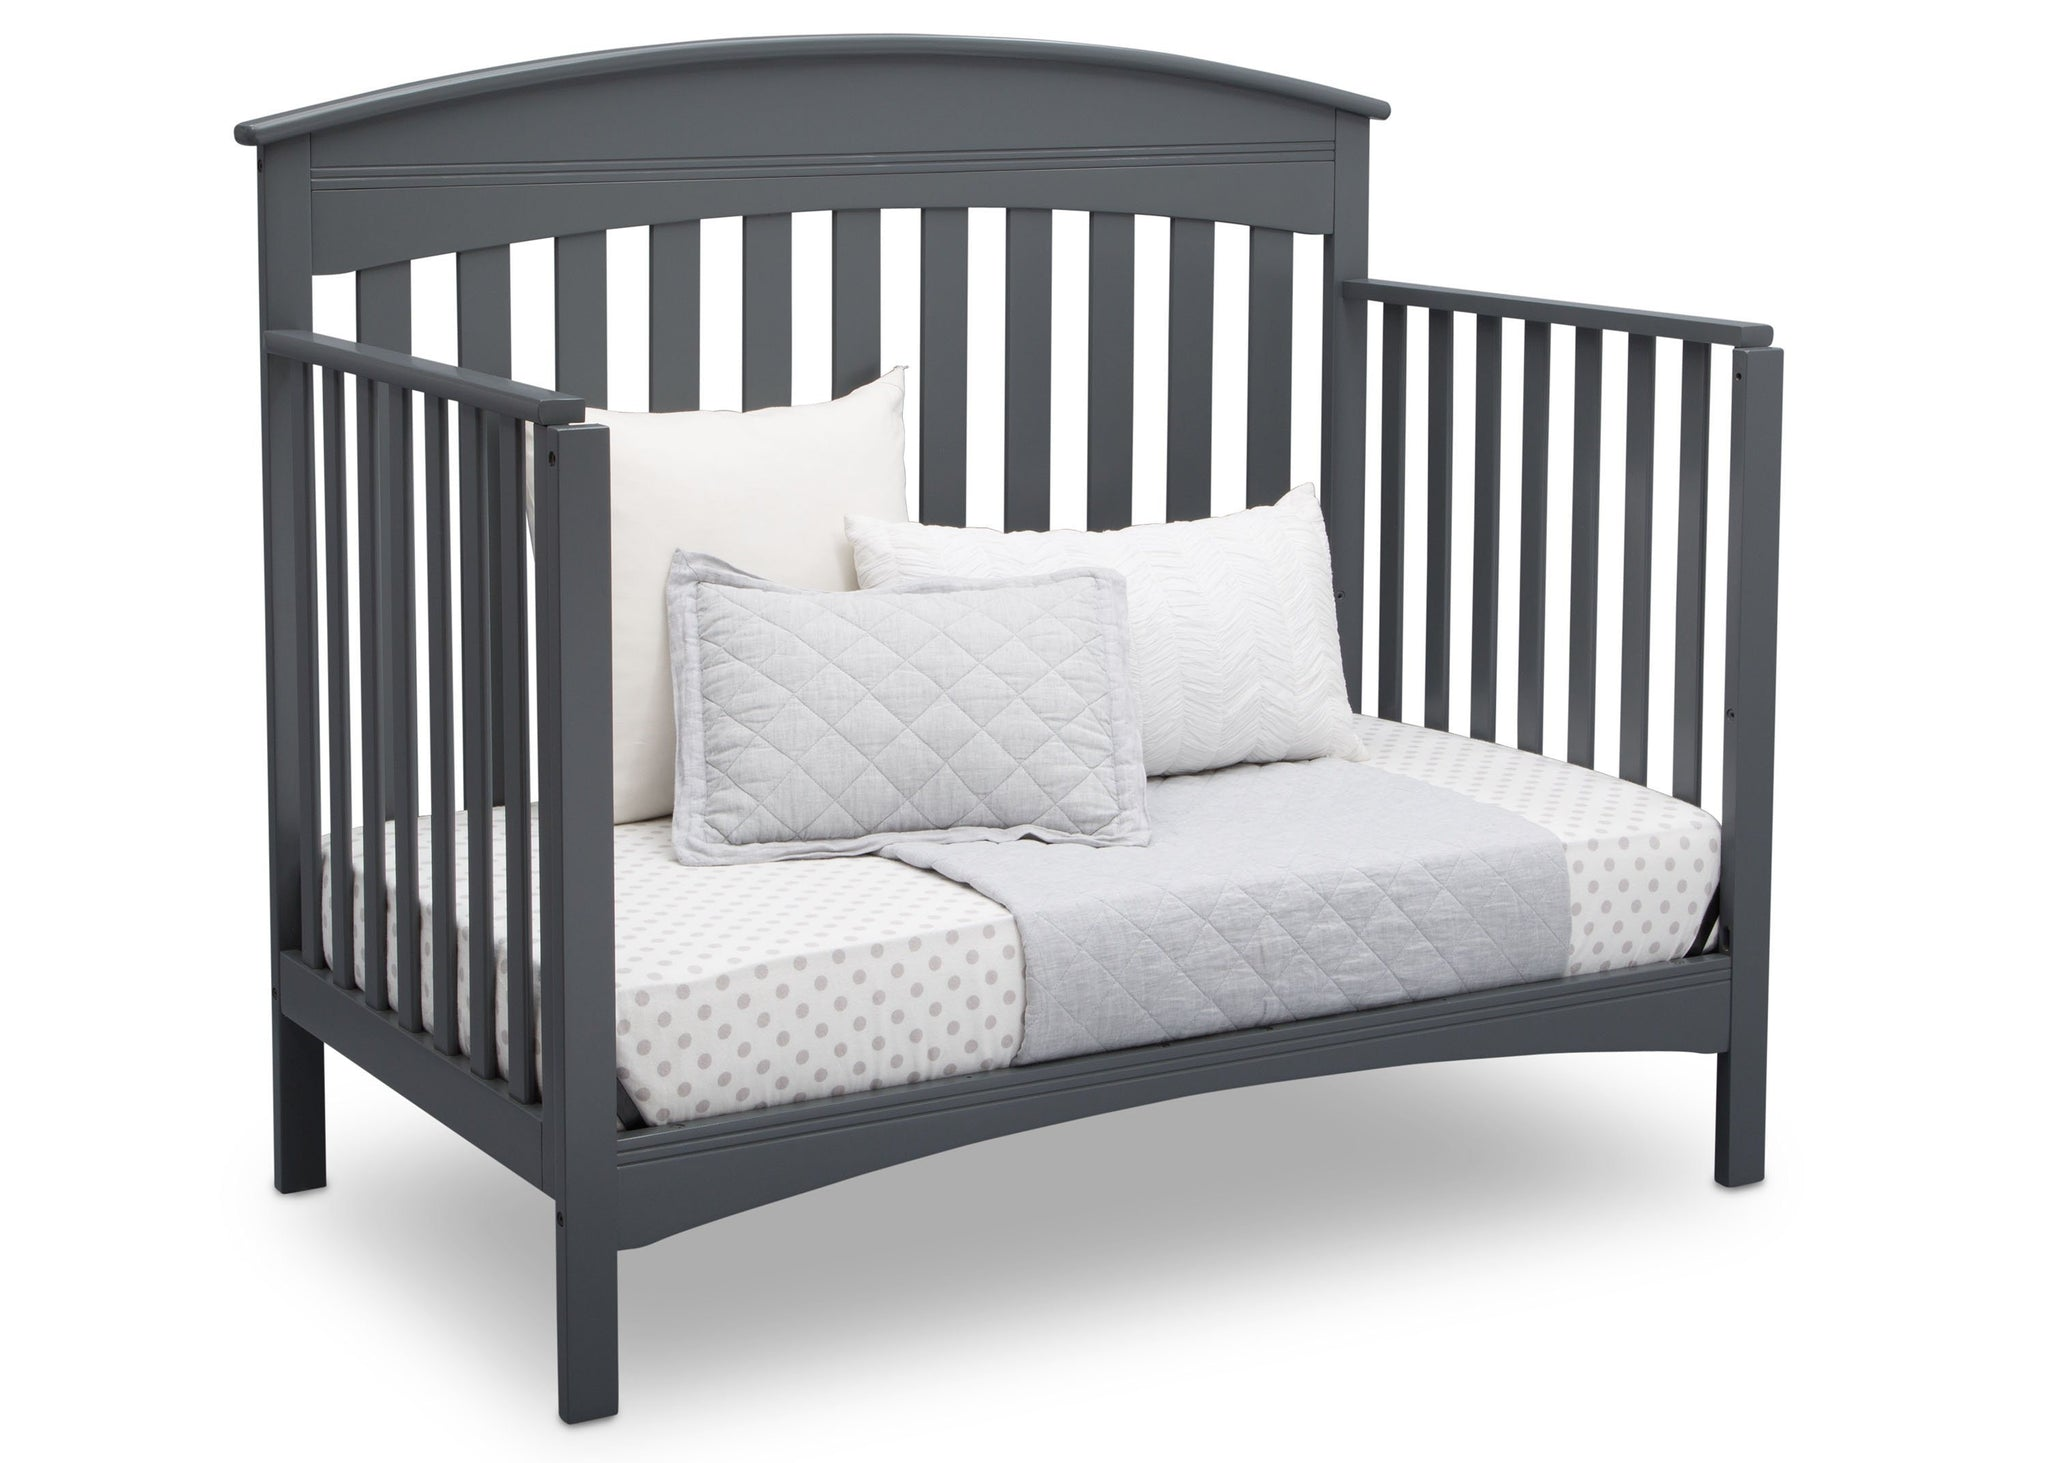 Delta Children Charcoal Grey (029) Bennington Elite Arched 4-in-1 Convertible Crib, Day Bed Angle, a5a